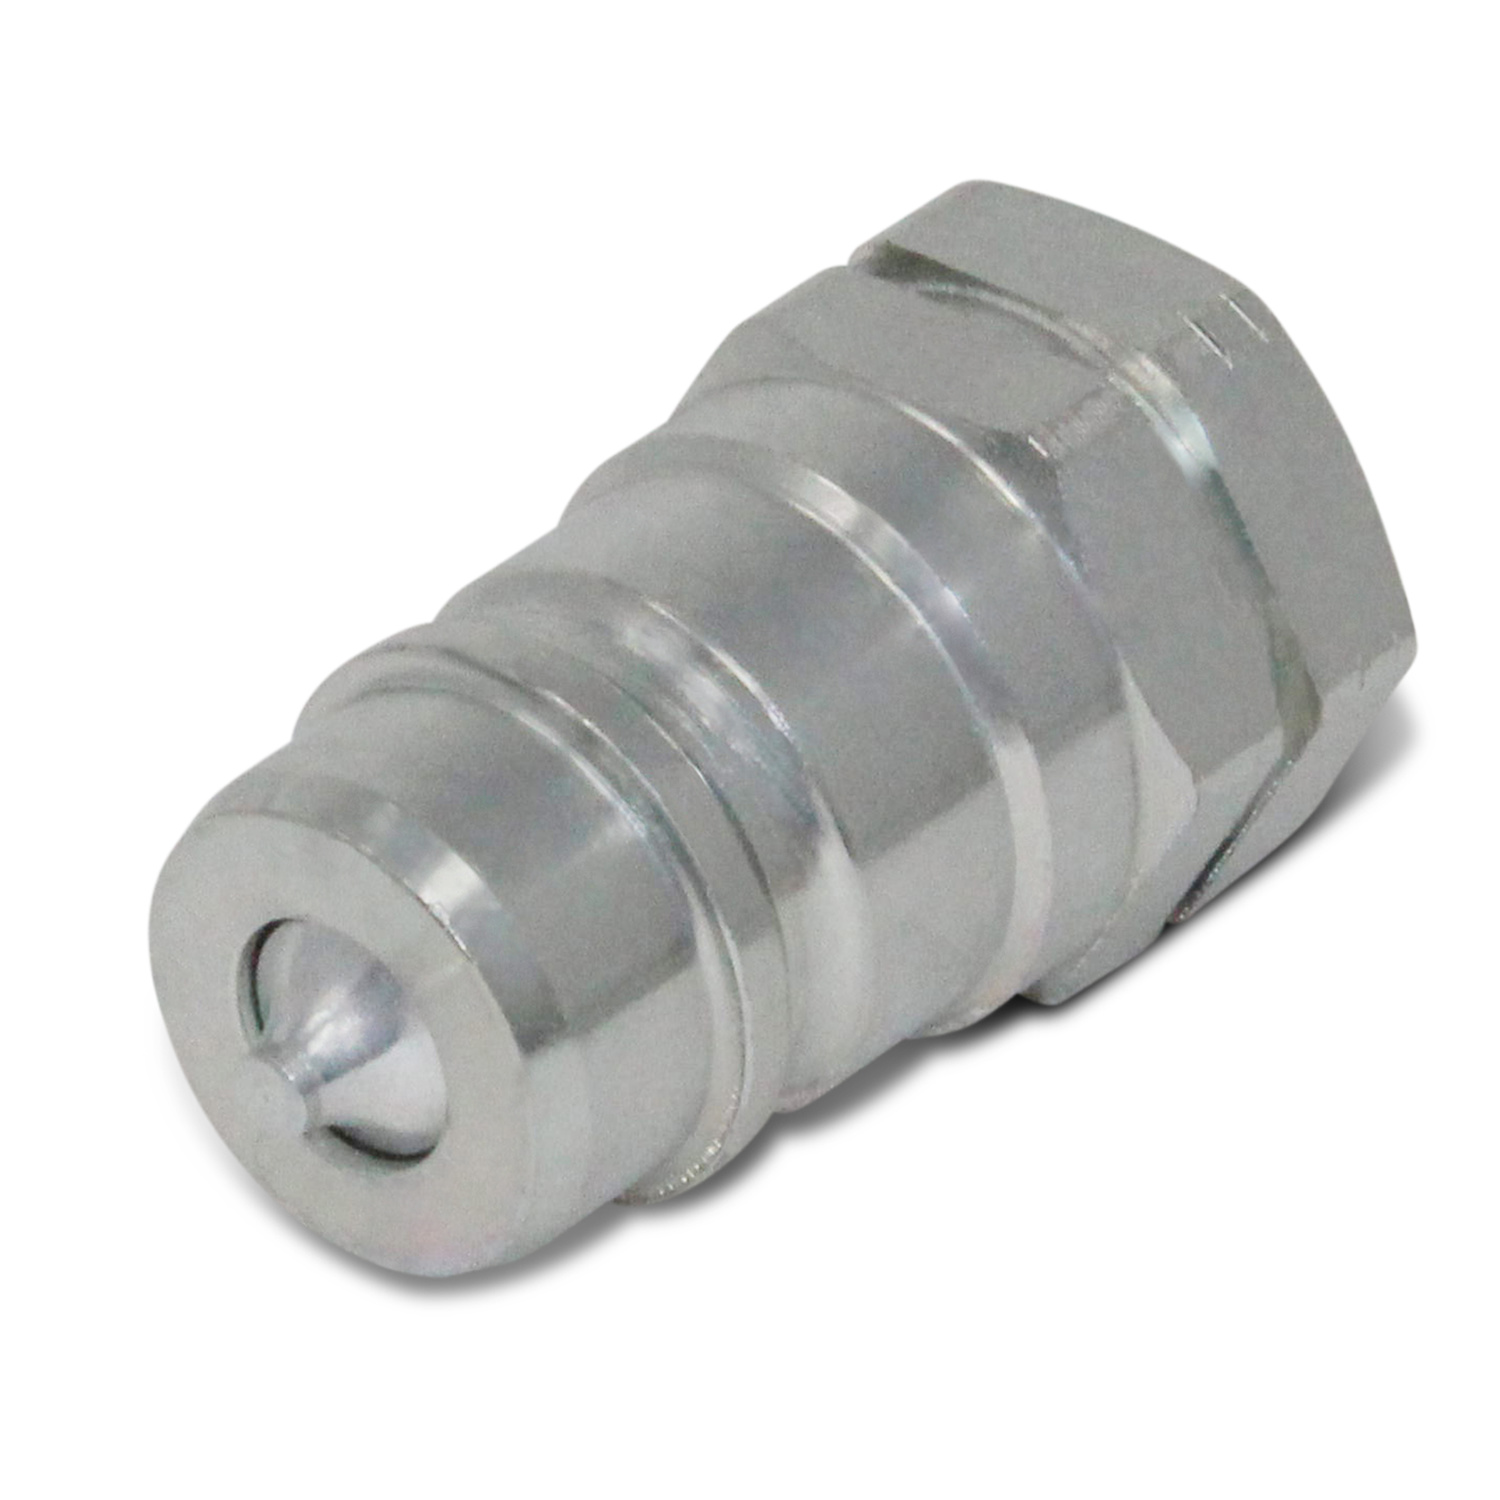 1//2 Ag ISO 5675 Hydraulic Quick Connect Male Coupler 1//2 NPT 1//2 NPT Summit Hydraulics 2 Pack Poppet Valve